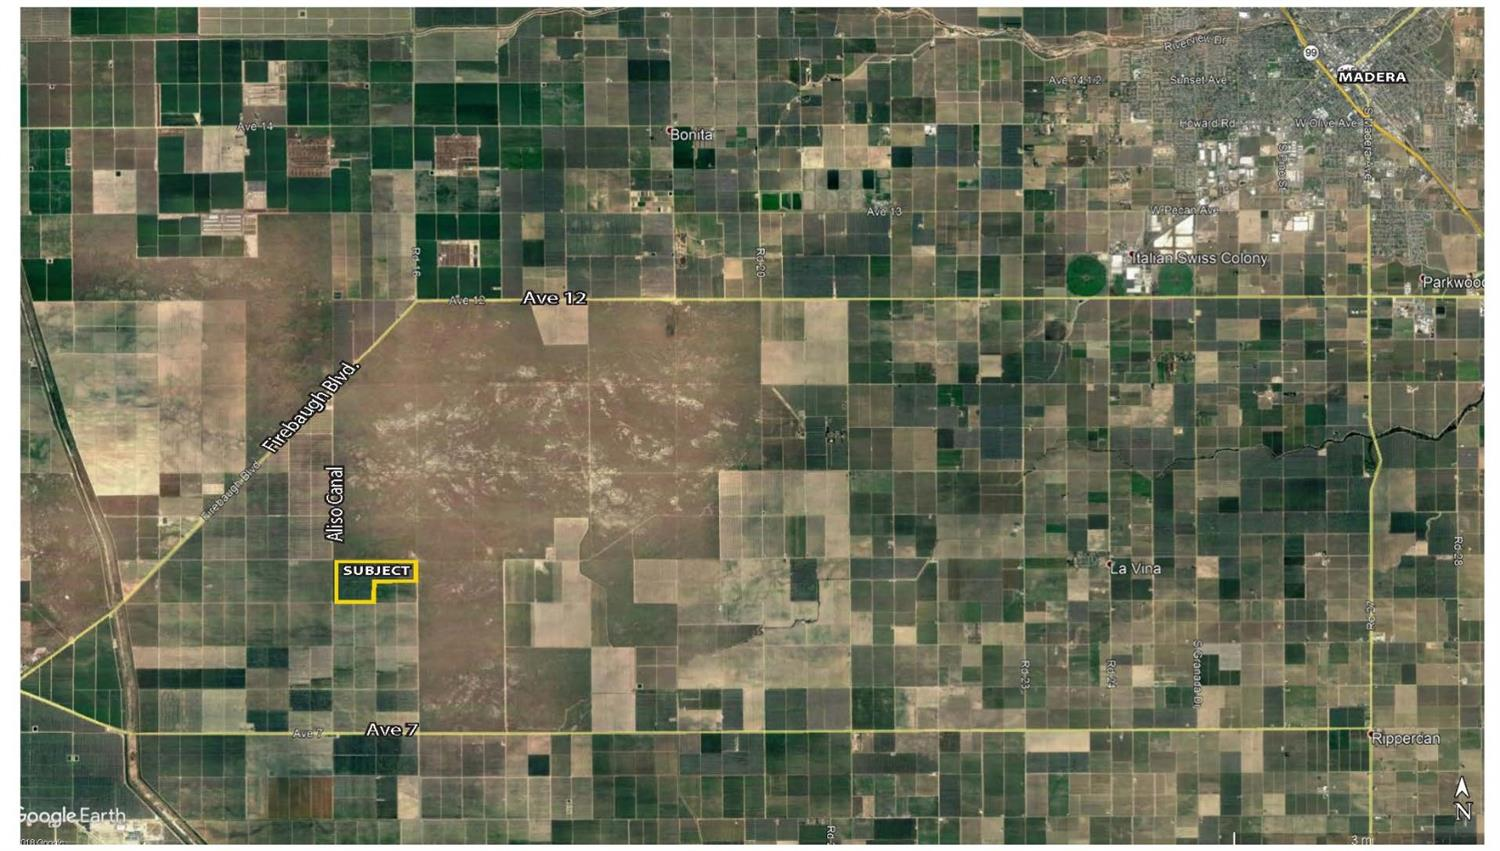 Approximately 231 net acres of producing Nonpareil/Monterey/Fritz almonds in Madera County. There are 2 pumps and deep wells to irrigate the orchard thru a filtered micro fan jet system.